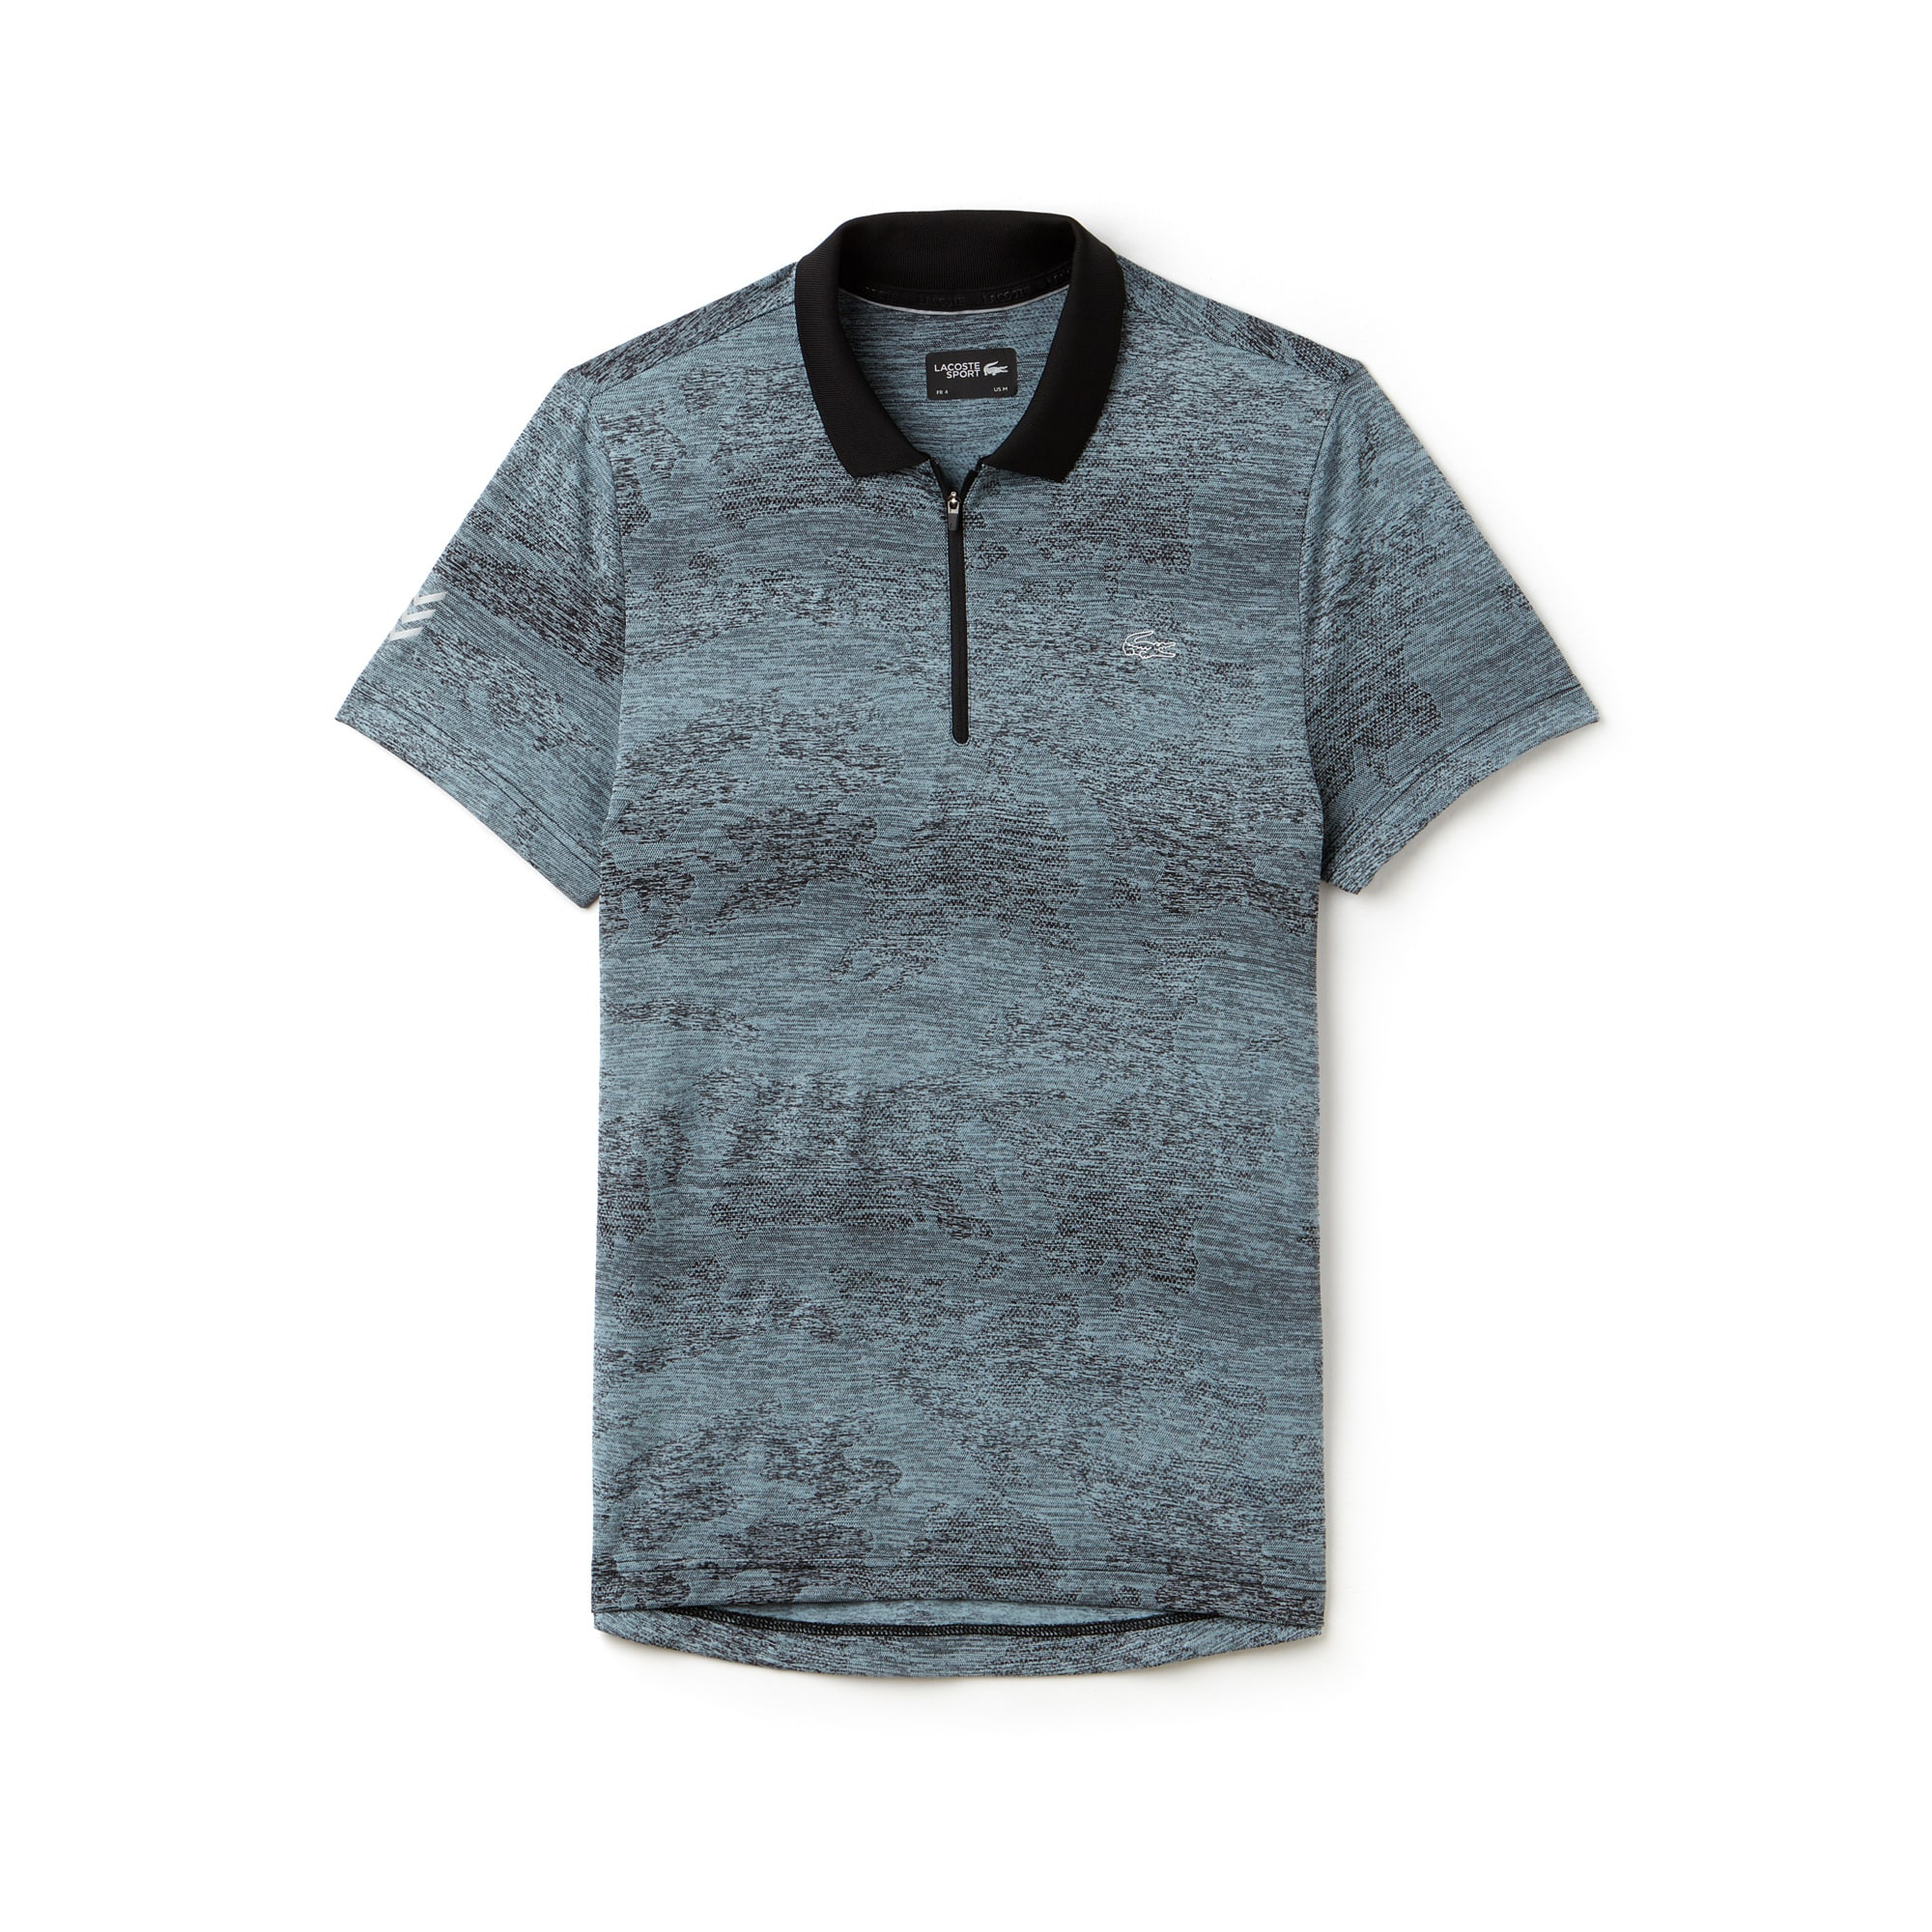 Men's SPORT Zip Neck Print Tennis Polo